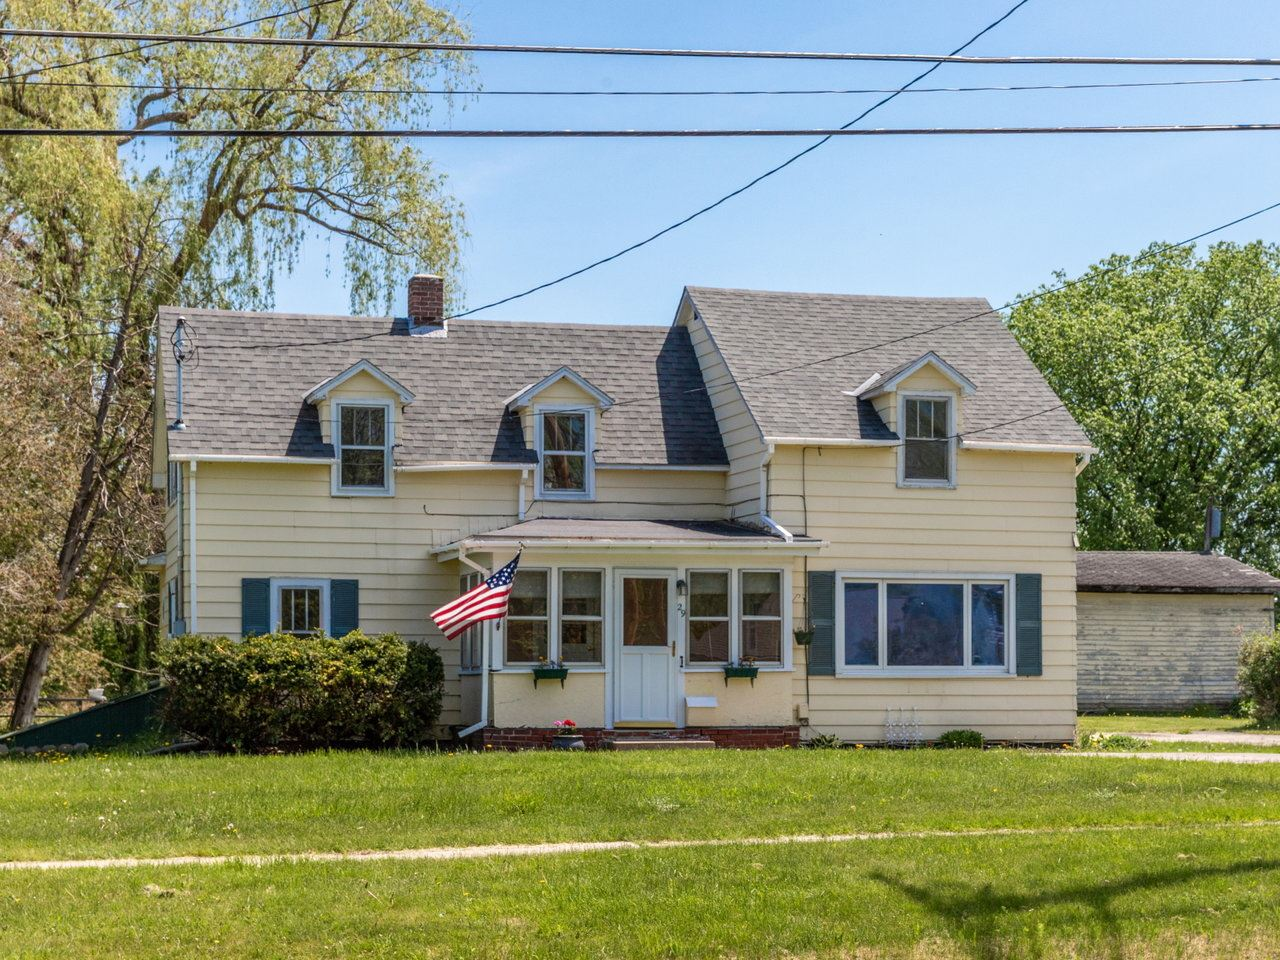 Sold property in Vergennes